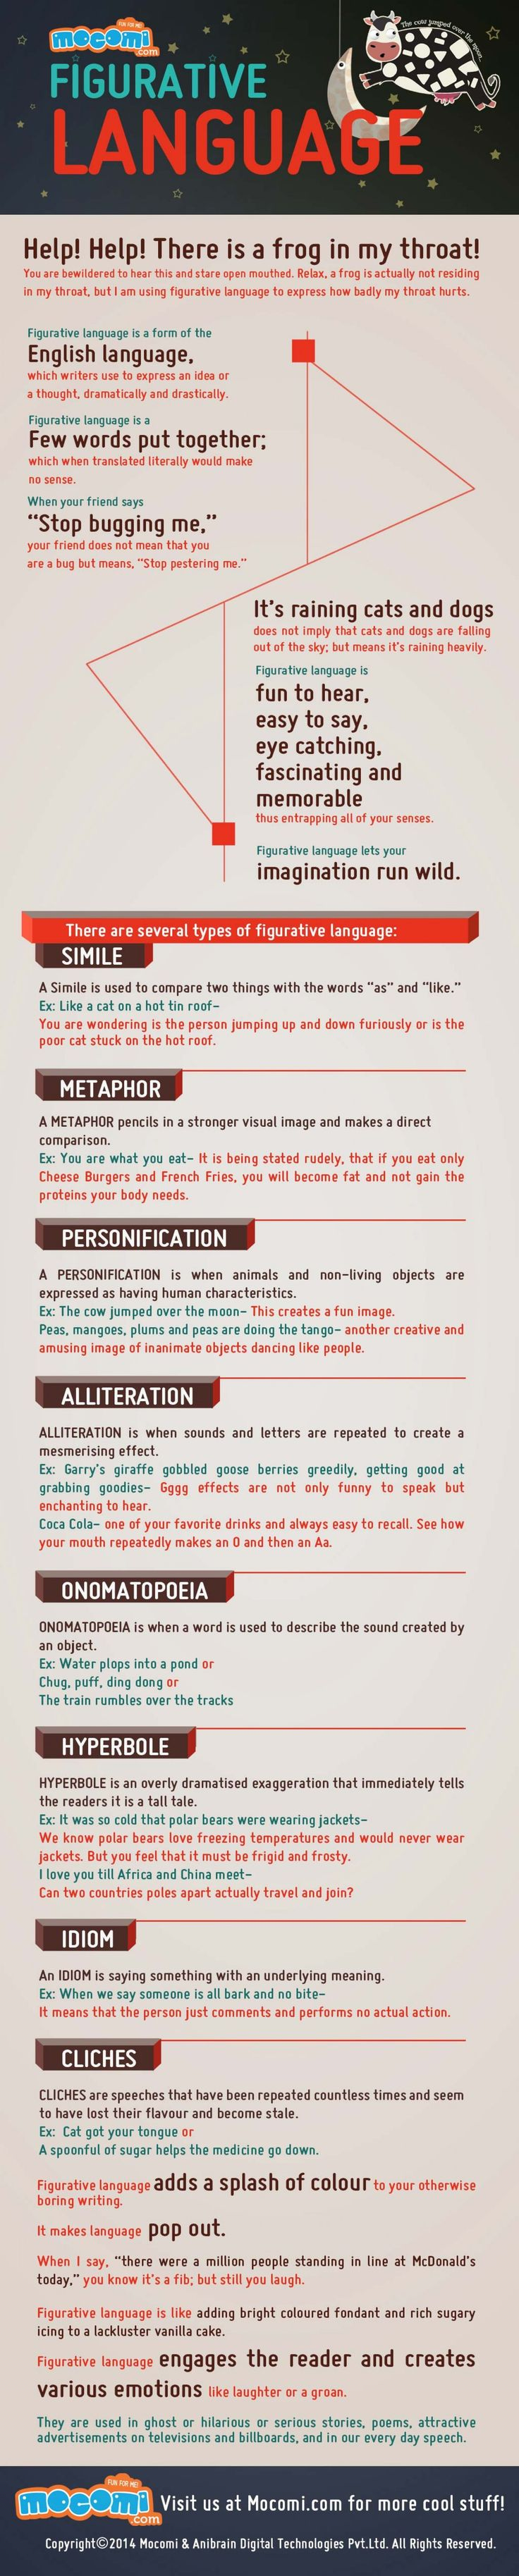 visual ly mocomifigurative language infographicthis infographic doesnt just